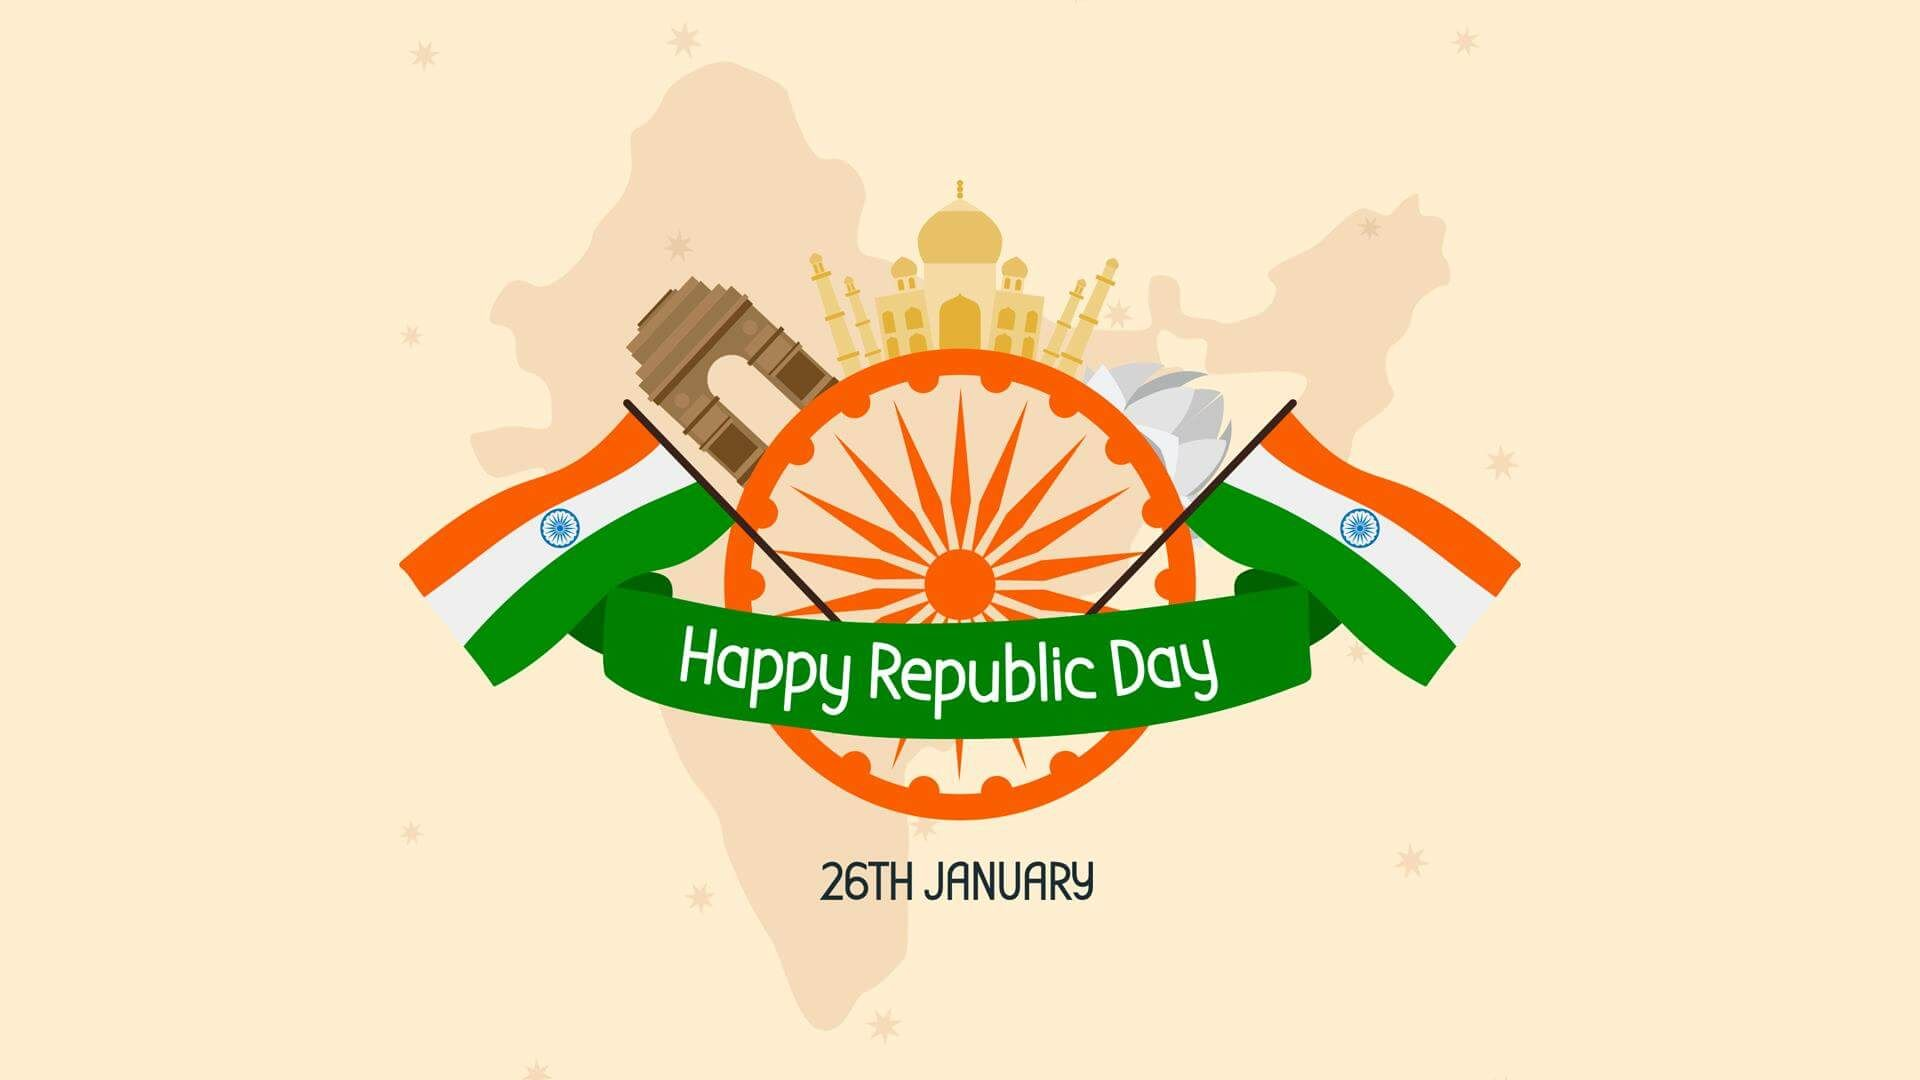 Happy Republic Day Images and Photos Collection